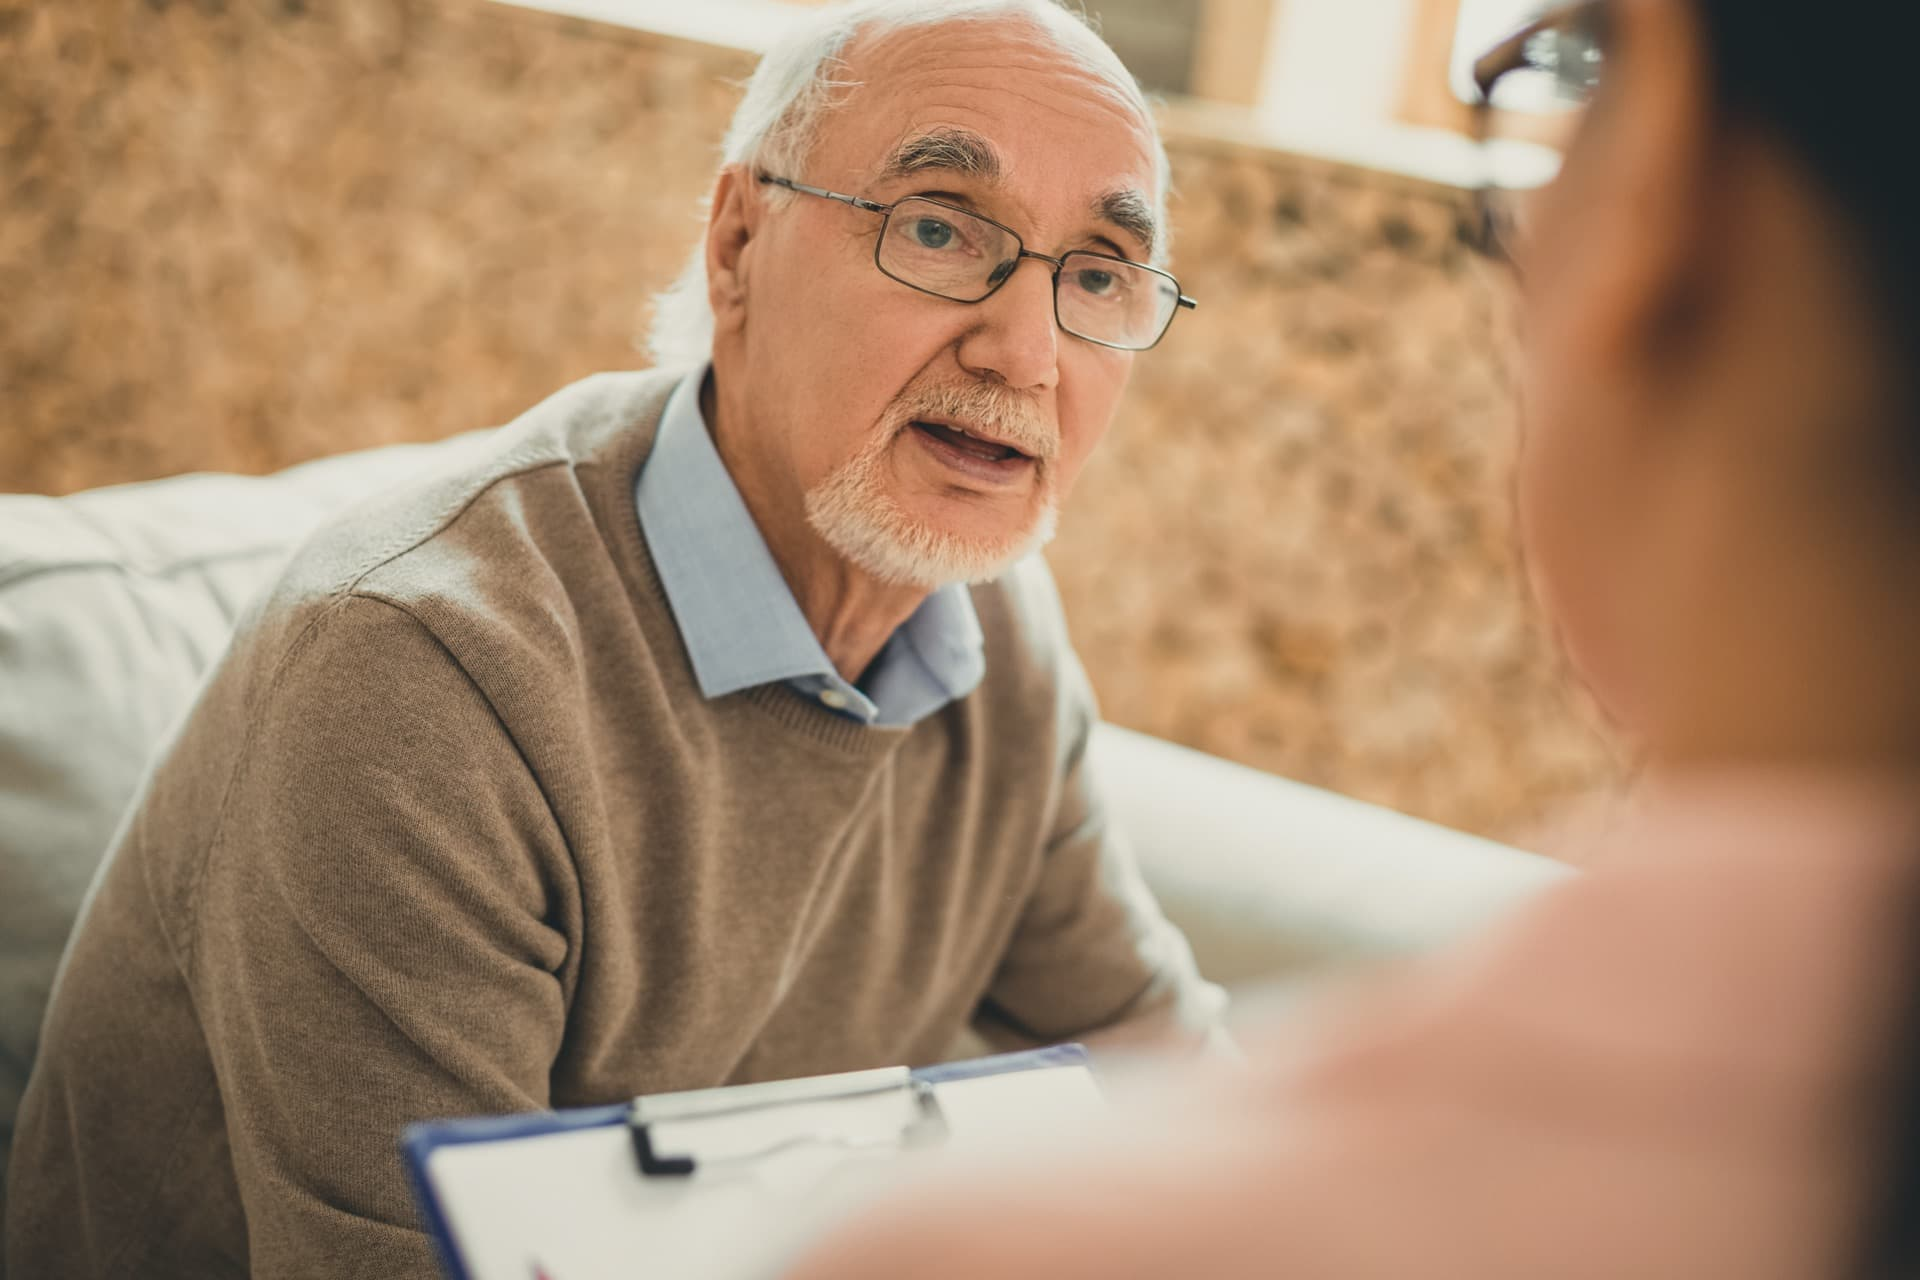 What to Look for When Picking a Nursing Home